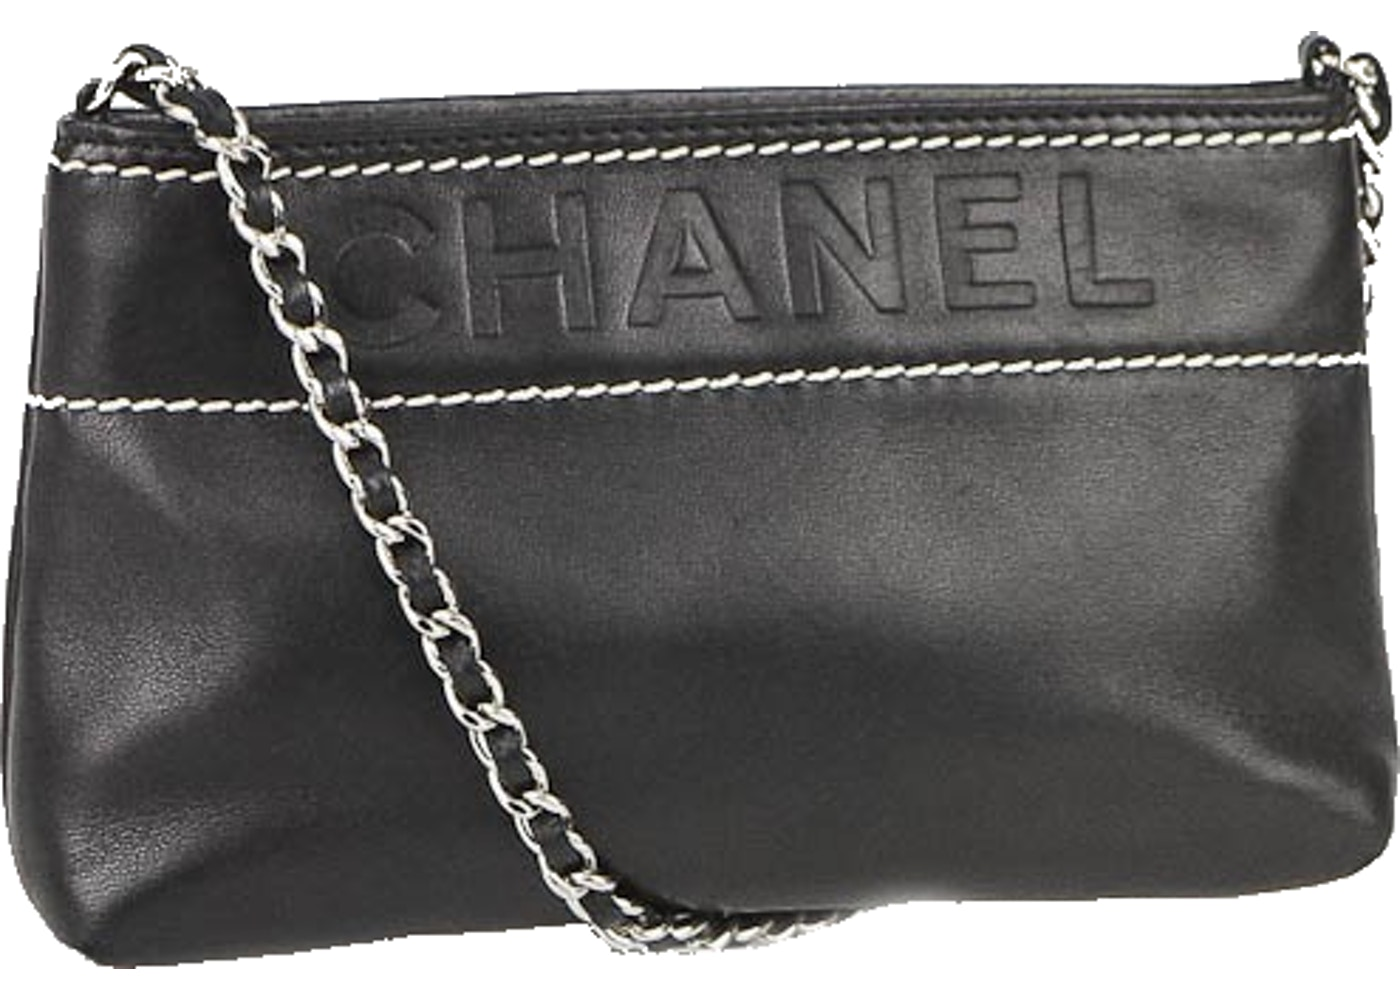 7adc2612fa Chanel Sac Pochette Black